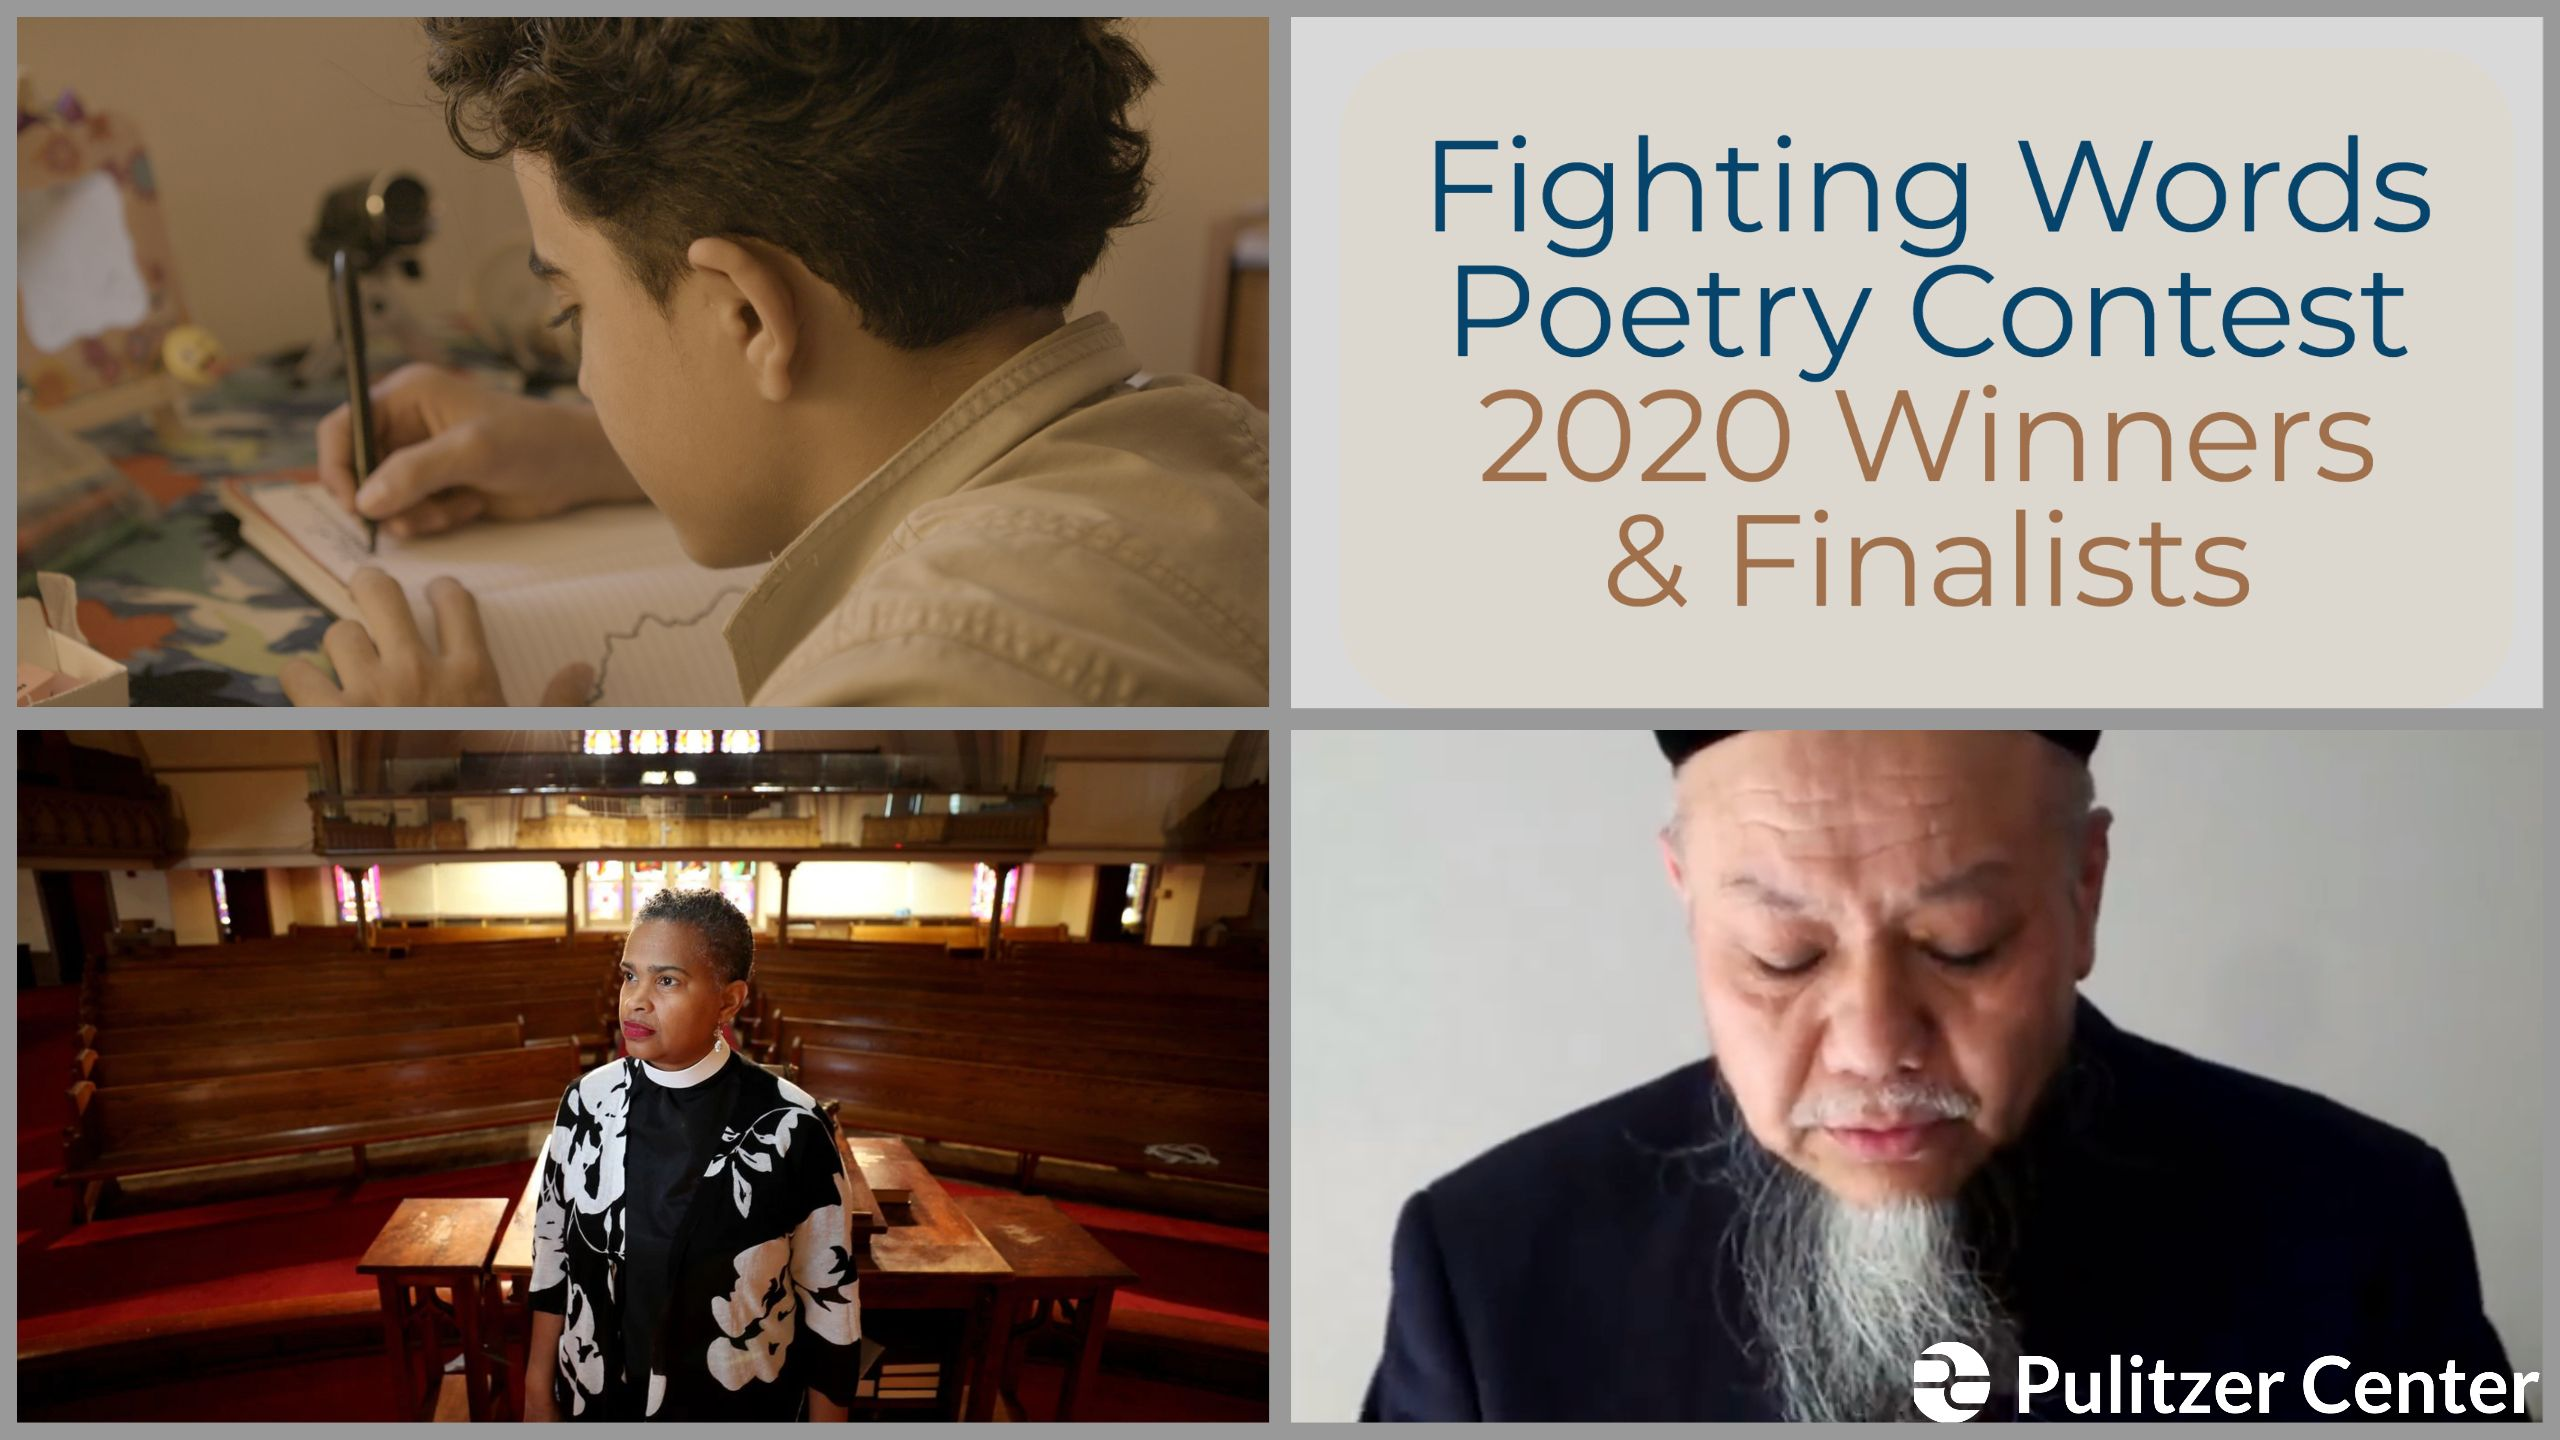 Announcing the 2020 winners of the Fighting Words Poetry Contest.